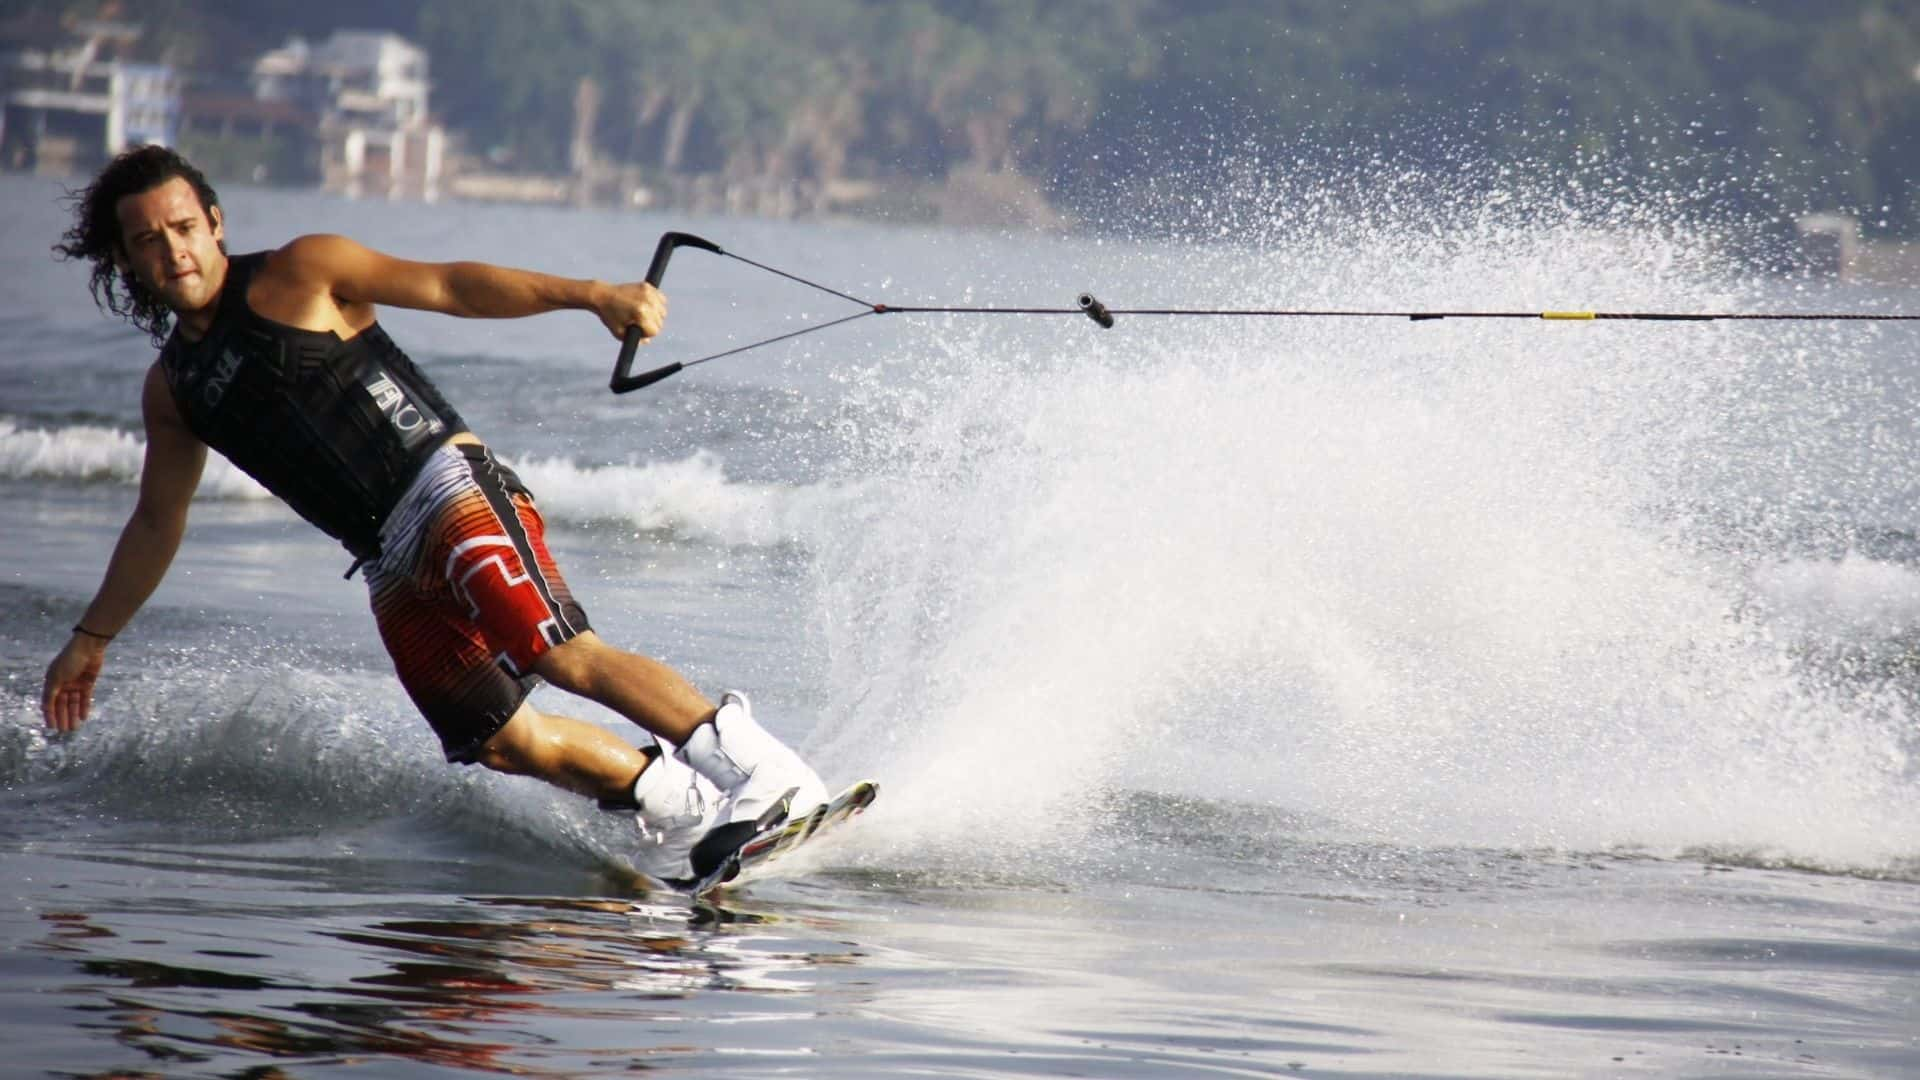 wakeboarding vs kneeboarding